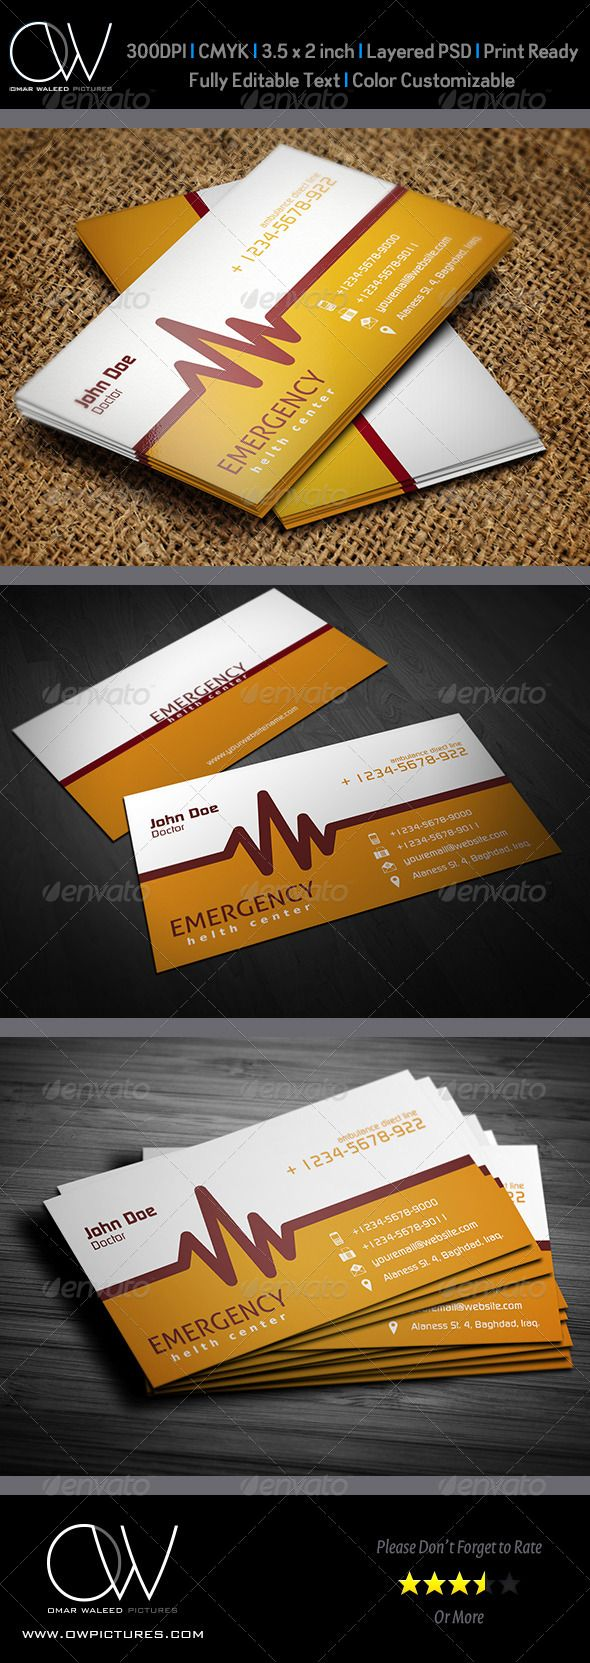 The 100 best design ideas business cards images on pinterest first aid business card vol3 reheart Images